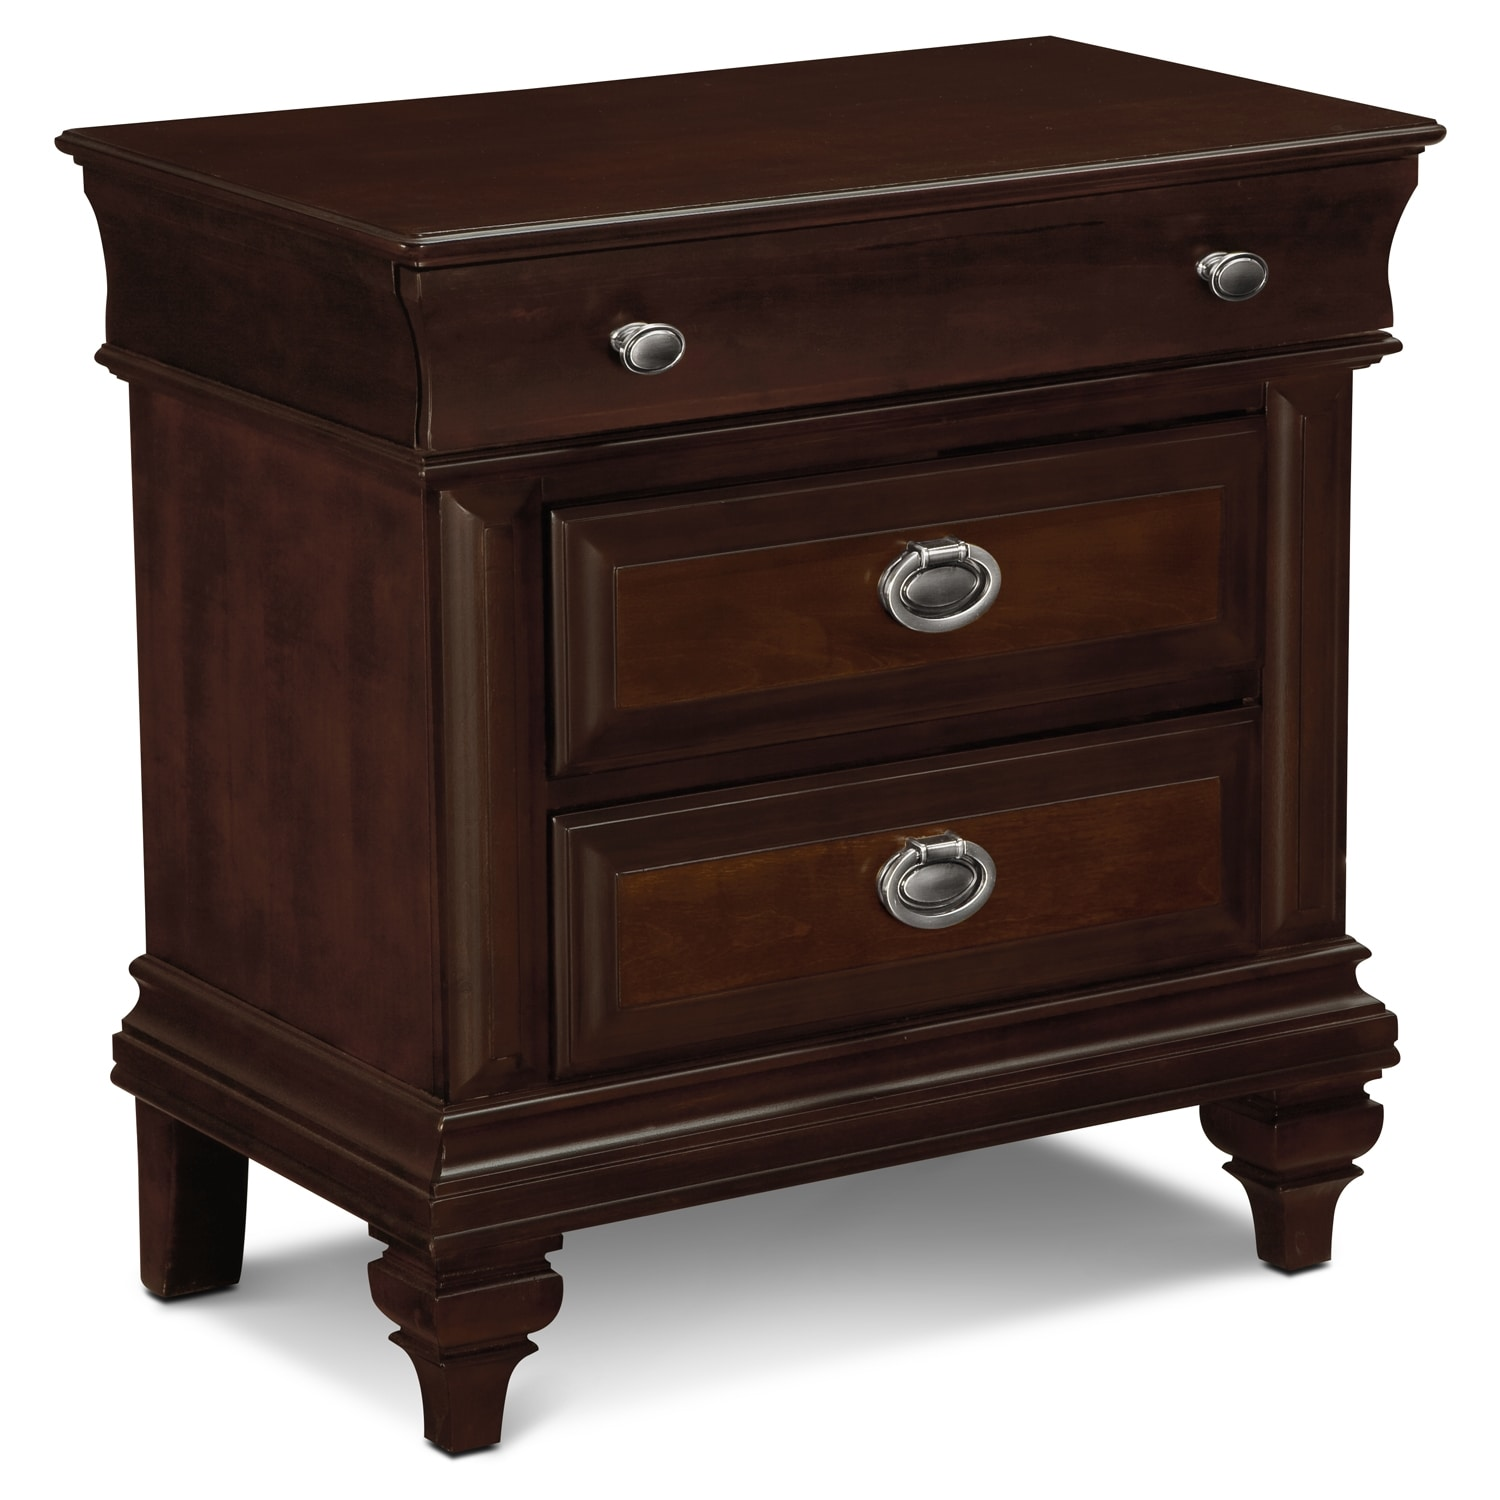 Manhattan Nightstand - Cherry